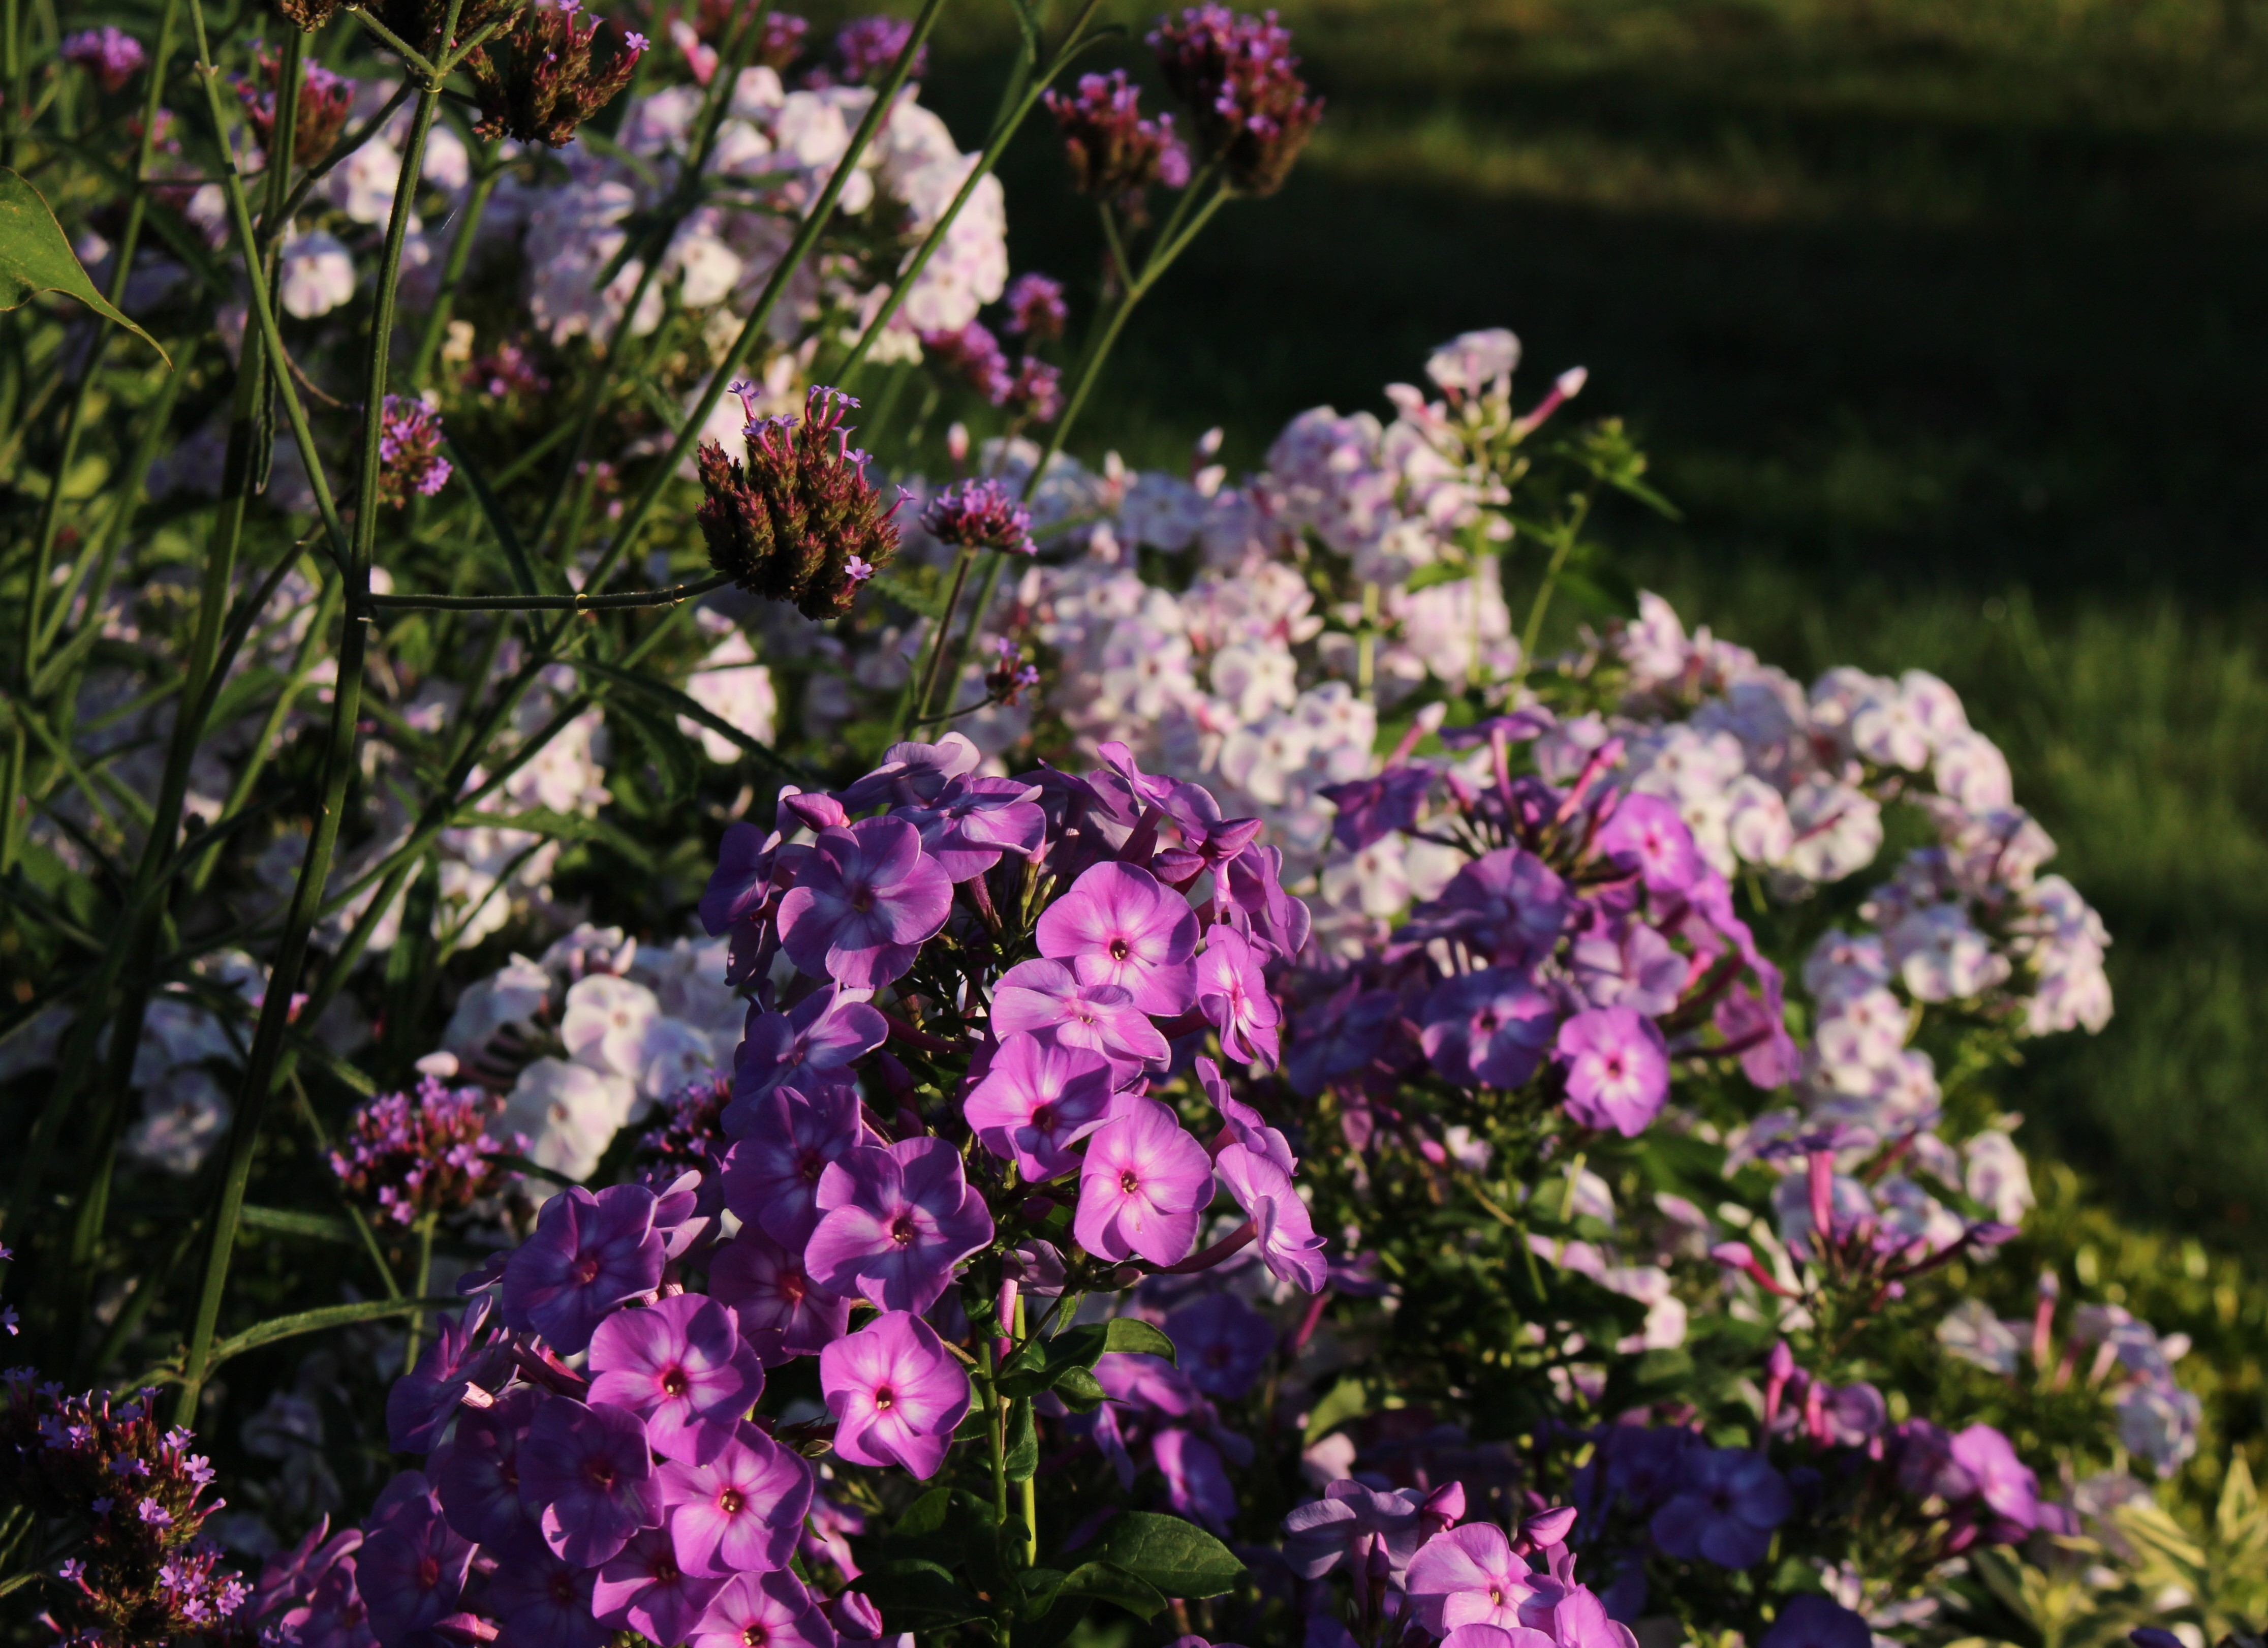 phlox sorta tall img garden suburbia seedlings like tag